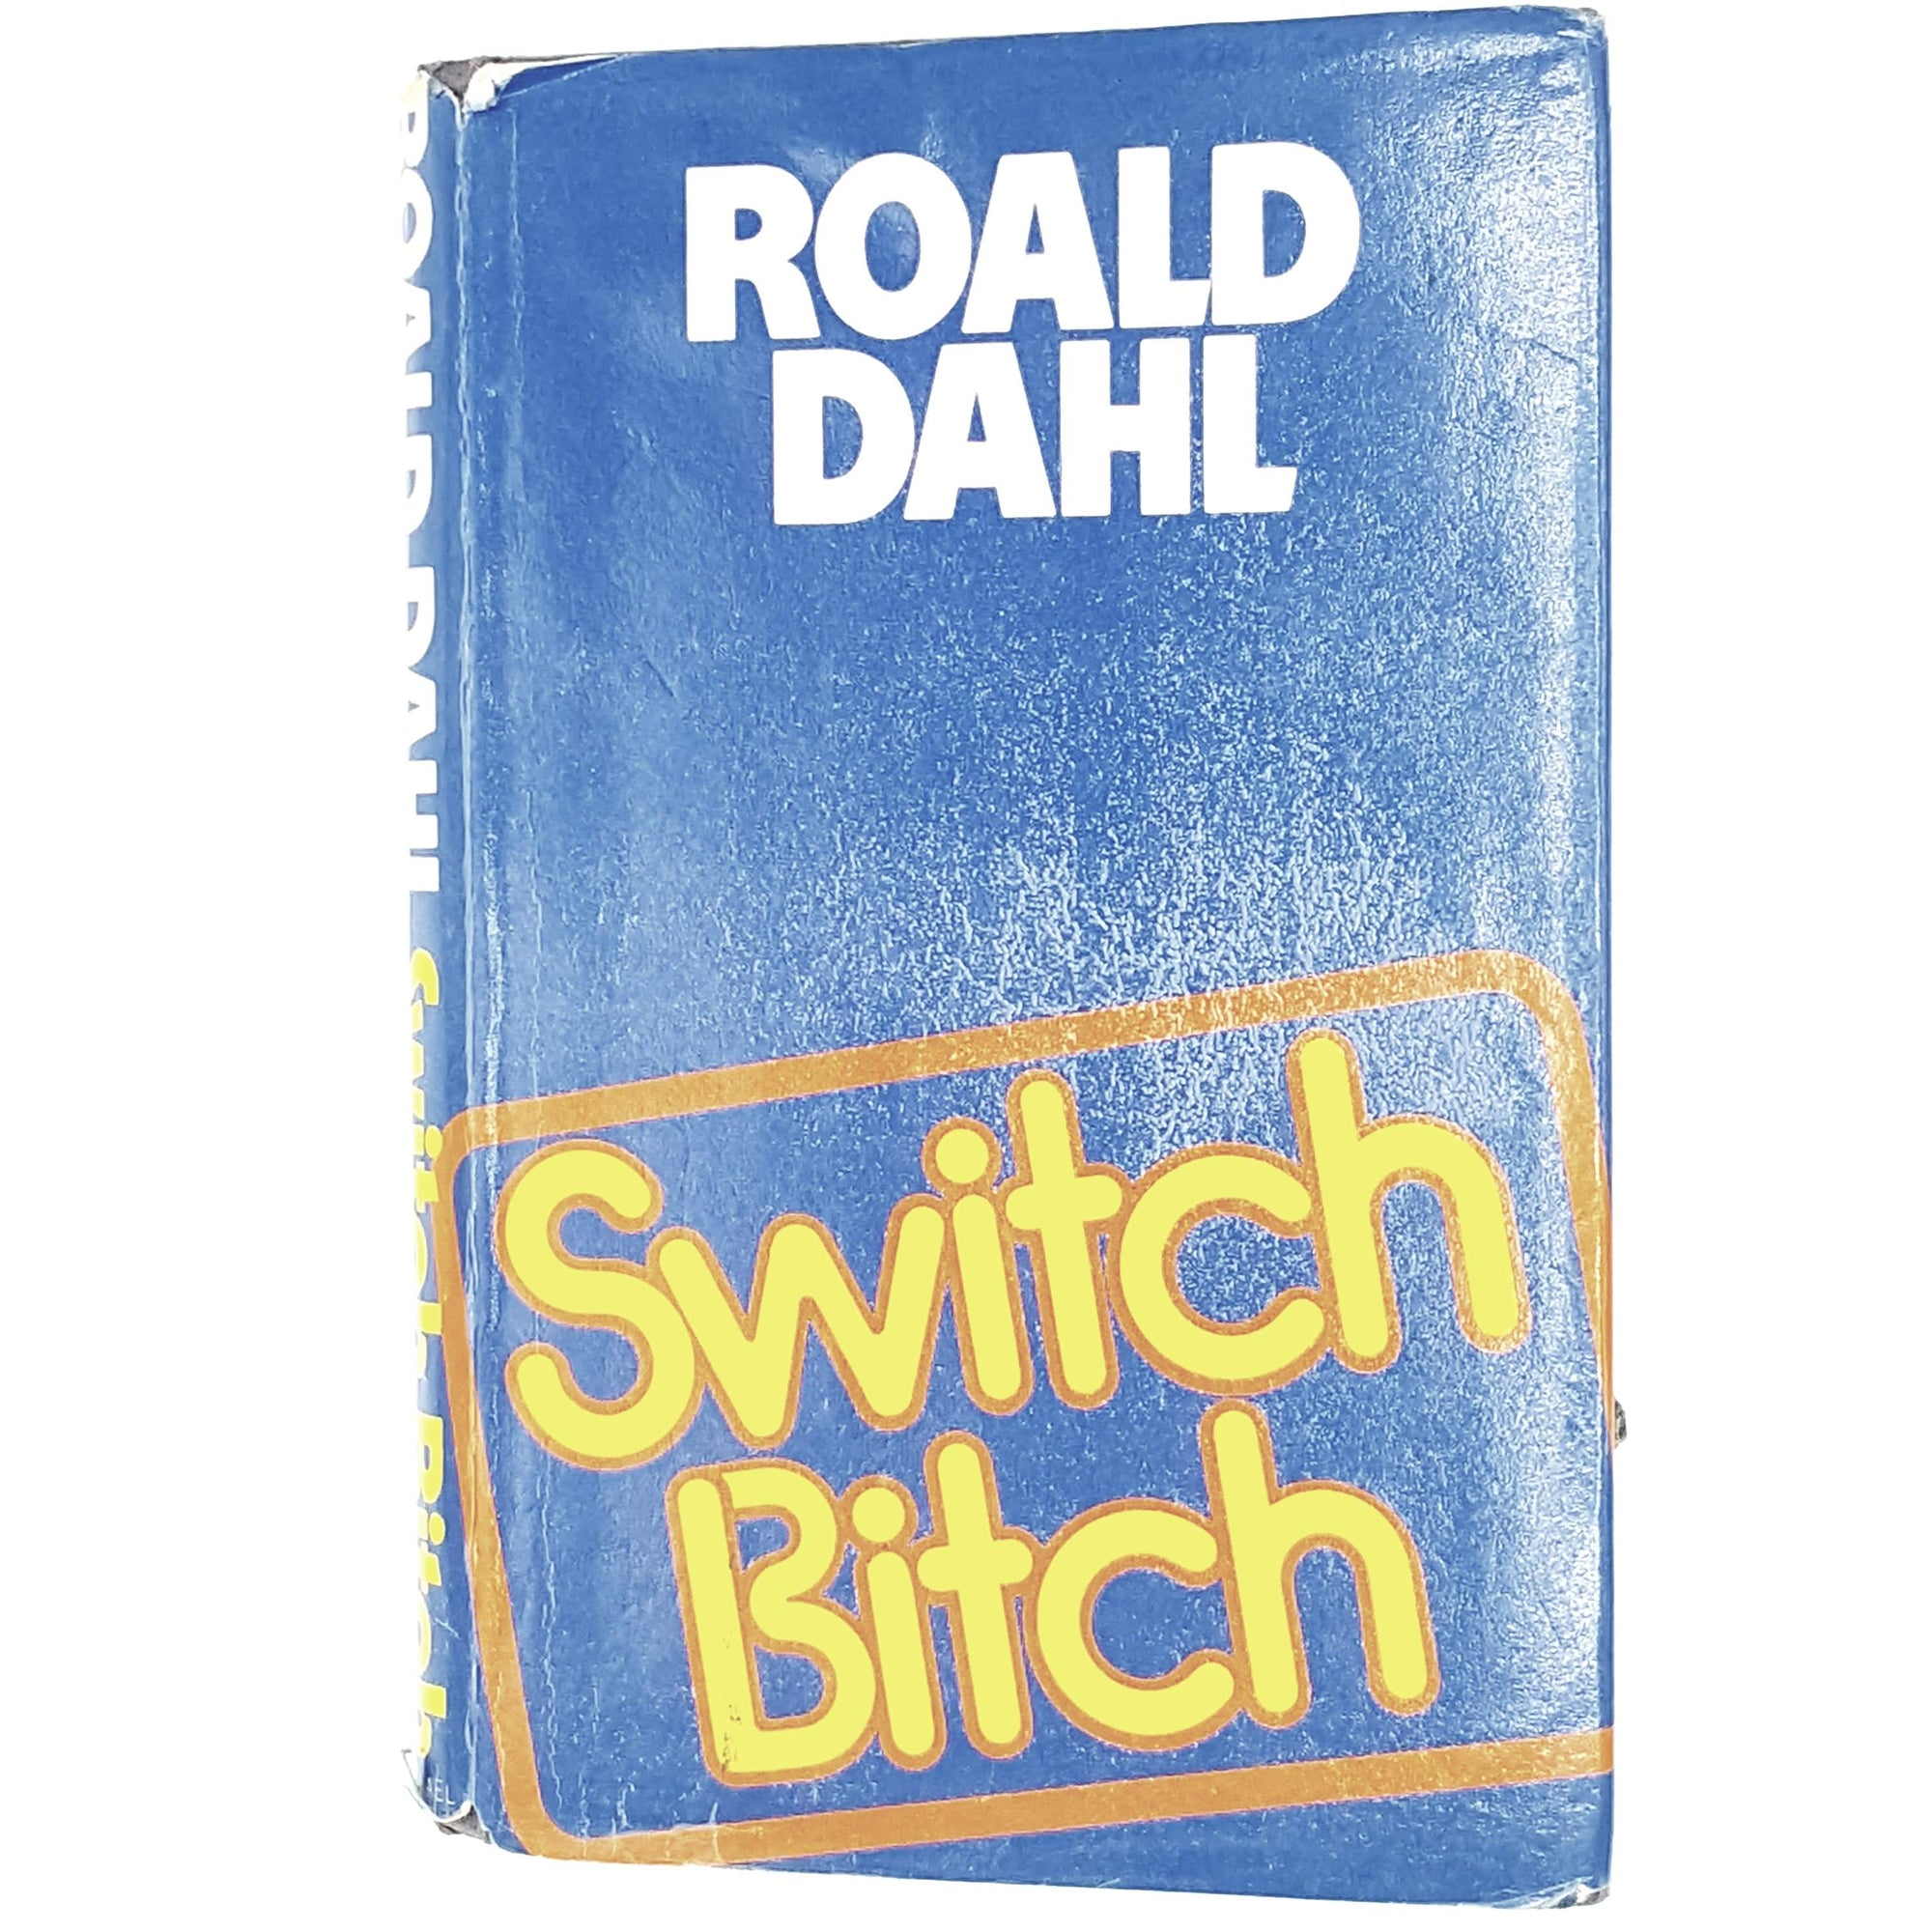 roald-dahl-blue-vintage-book-country-house-library